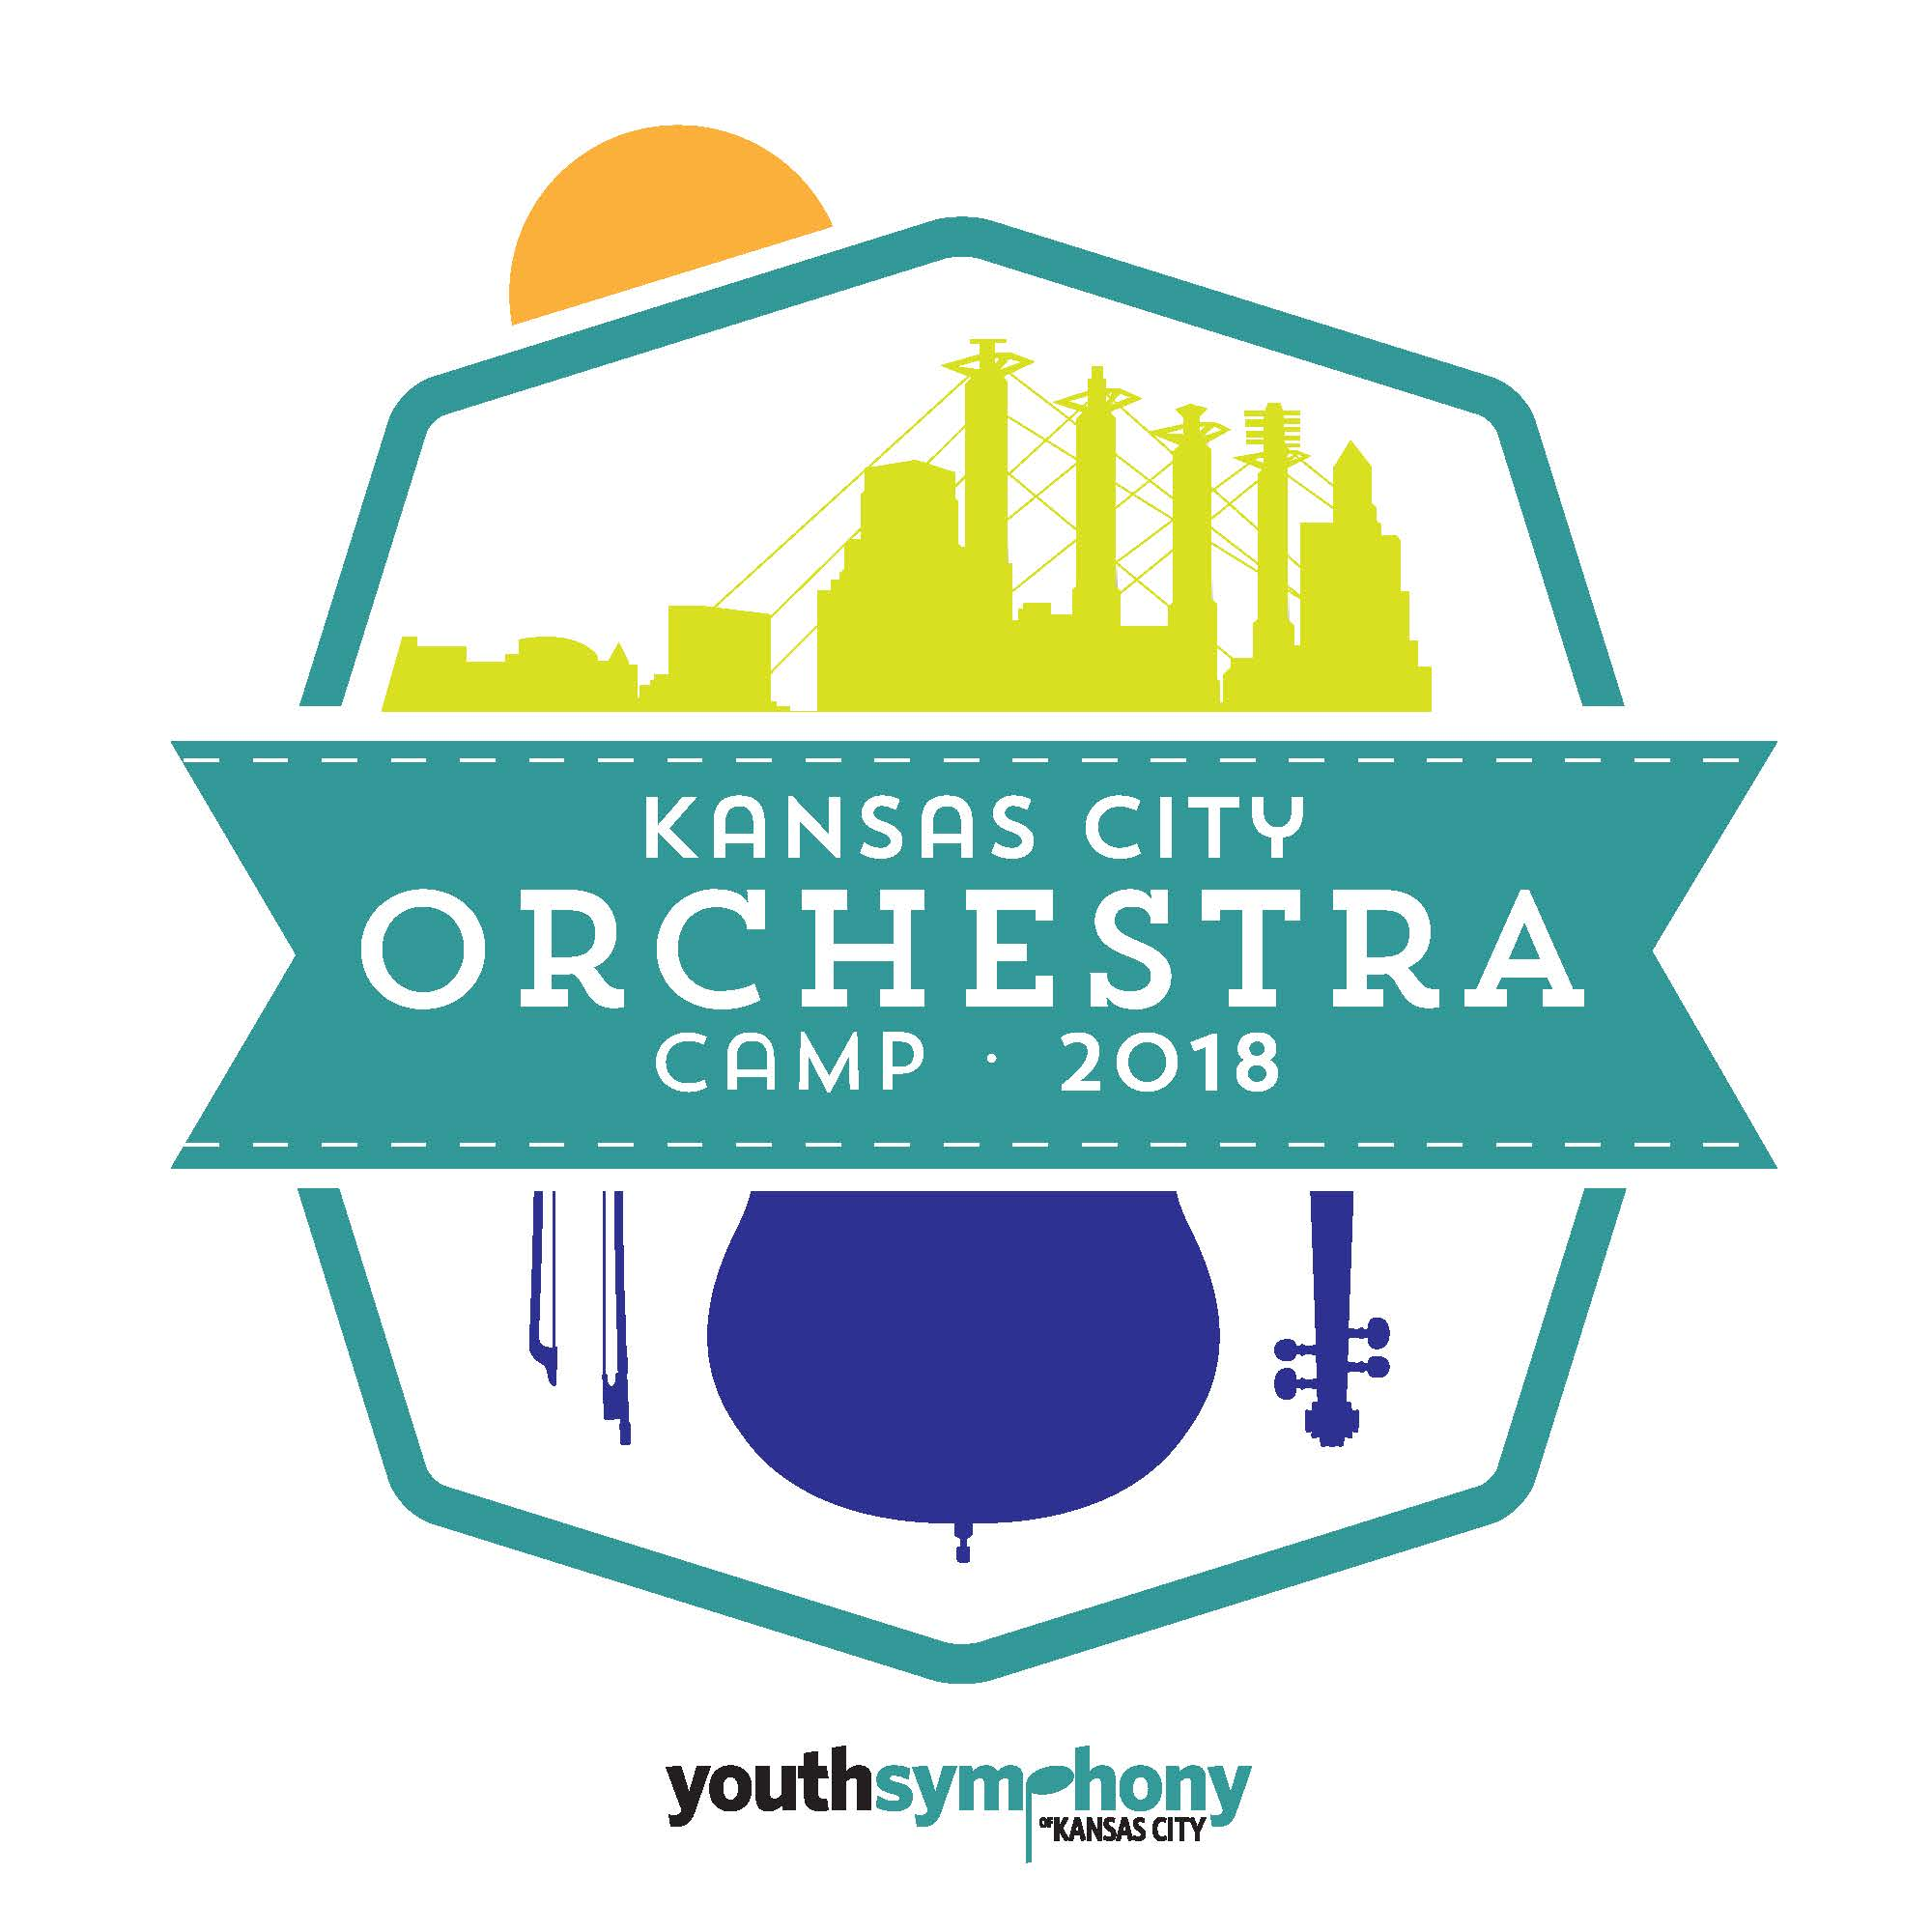 KC Orchestra Camp 2018!